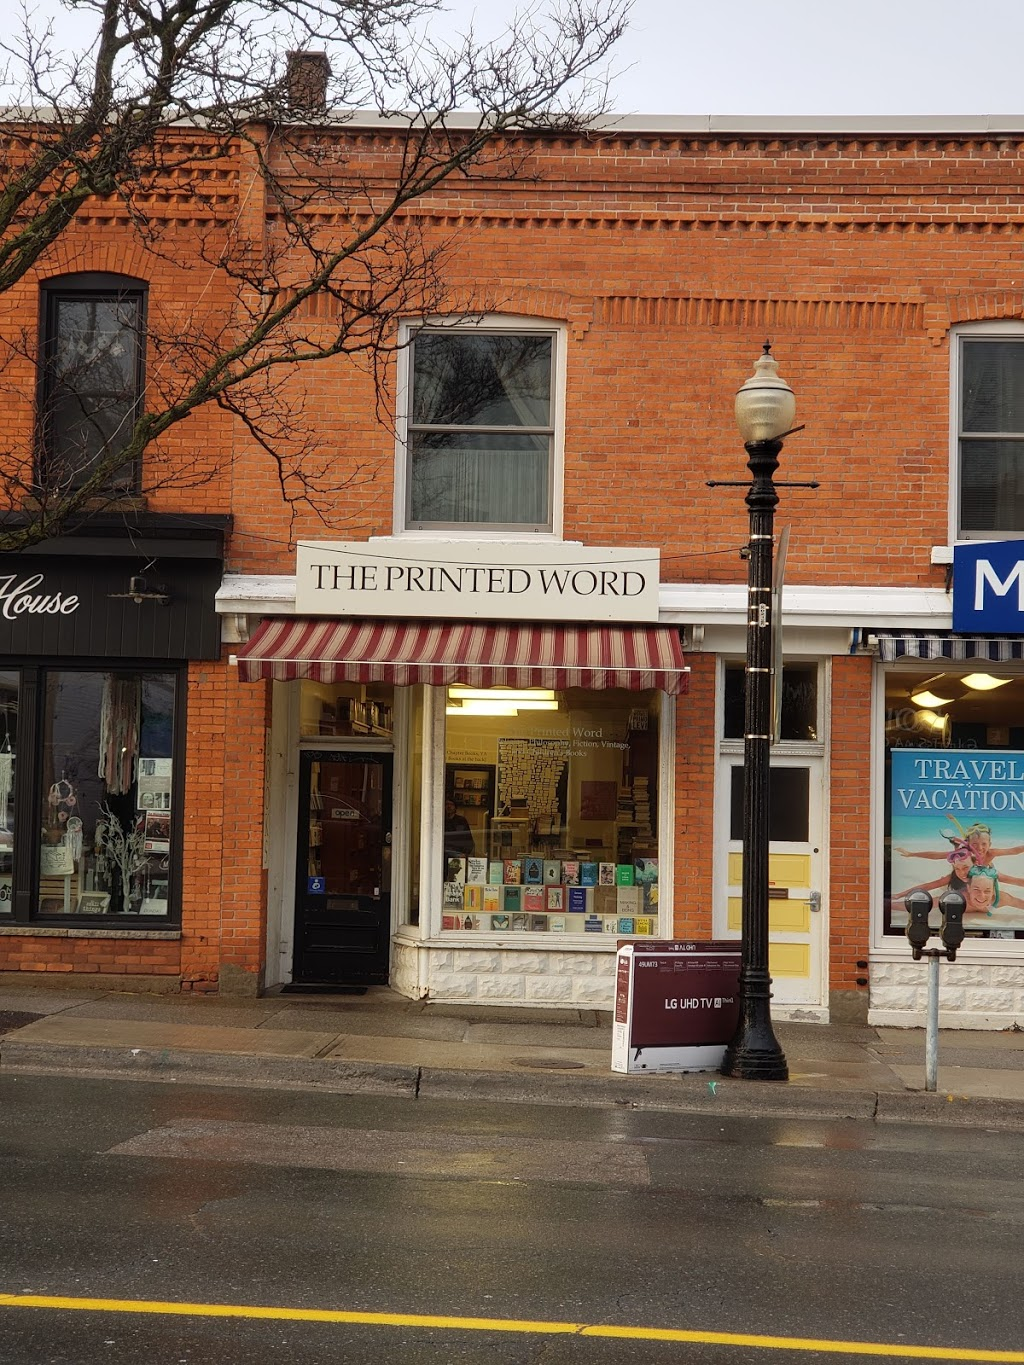 The Printed Word (by appointment only) | book store | 69 King St W, Dundas, ON L9H 1T5, Canada | 4379748428 OR +1 437-974-8428